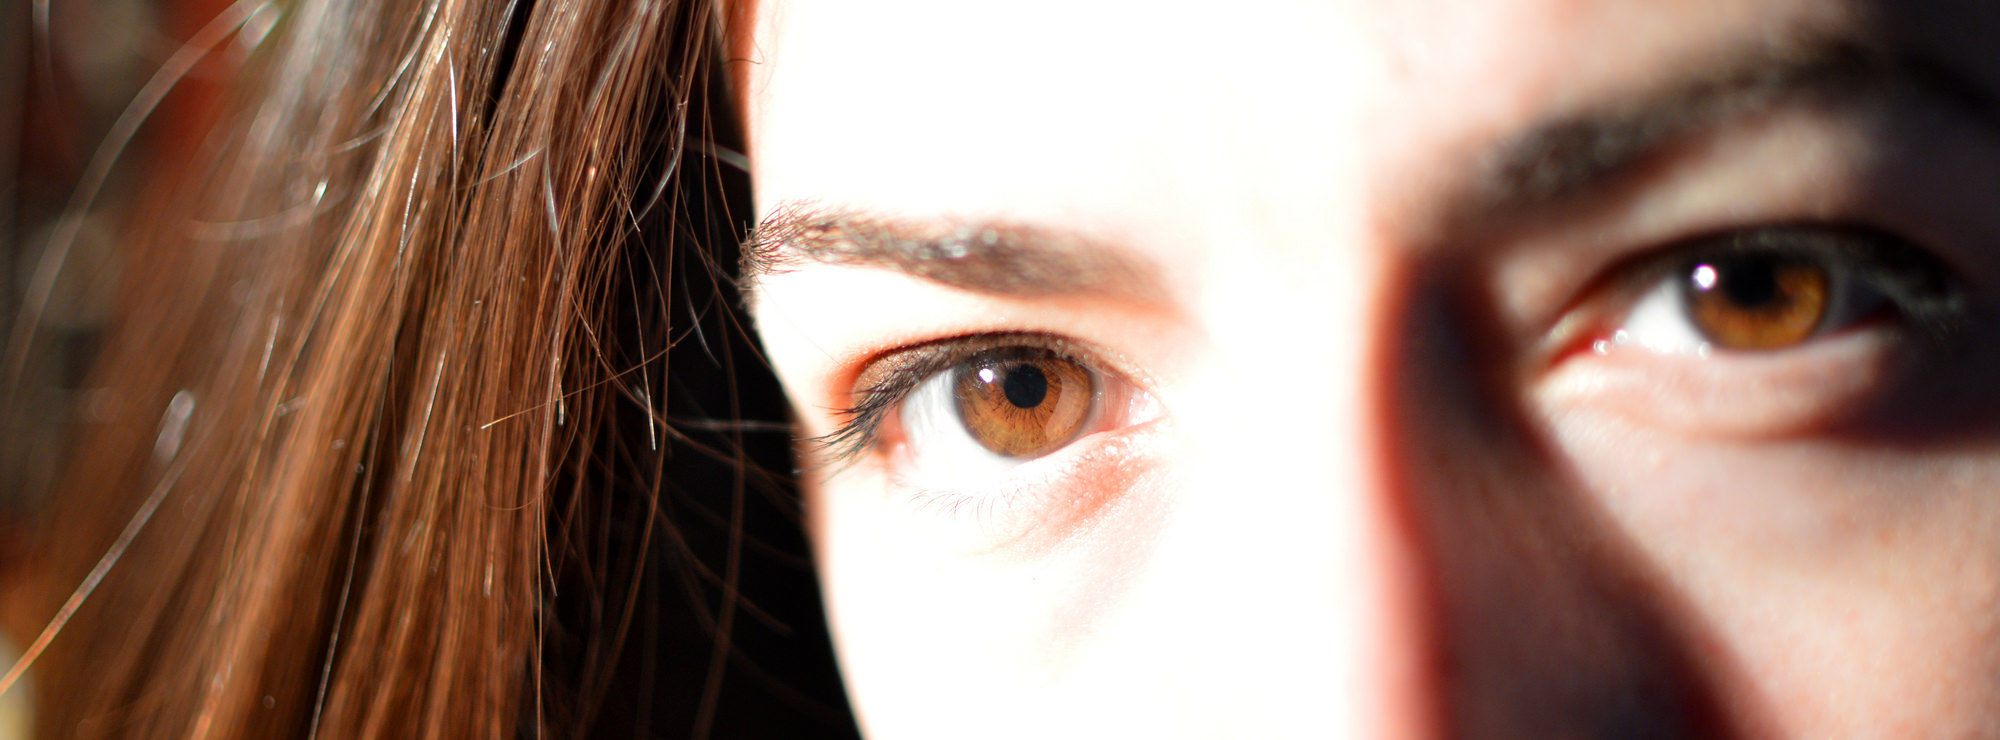 eyes of a woman in a letterbox frame